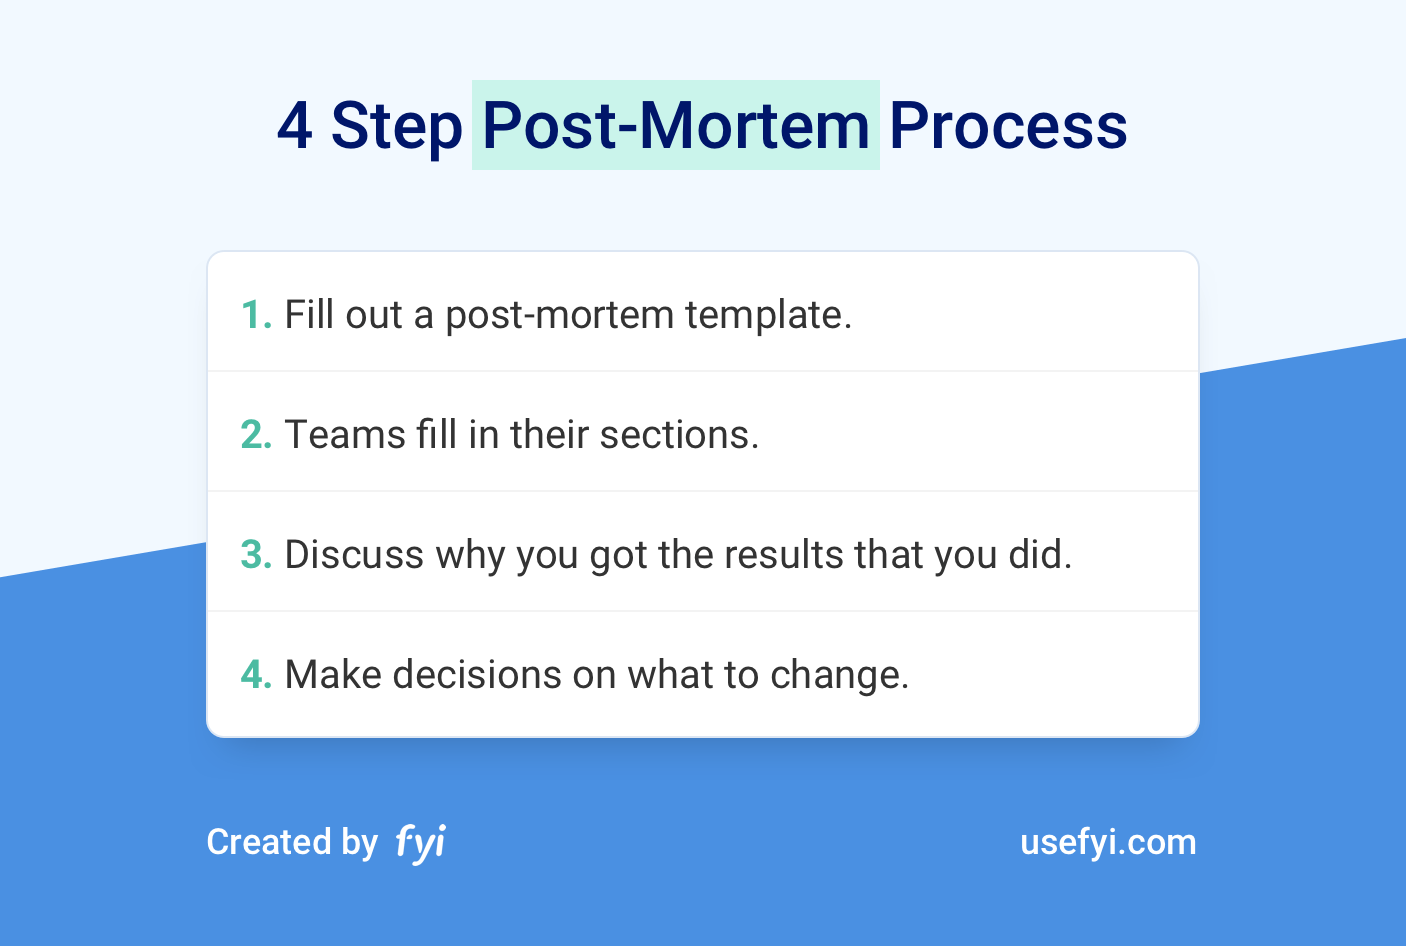 4 Step Post-Mortem Process